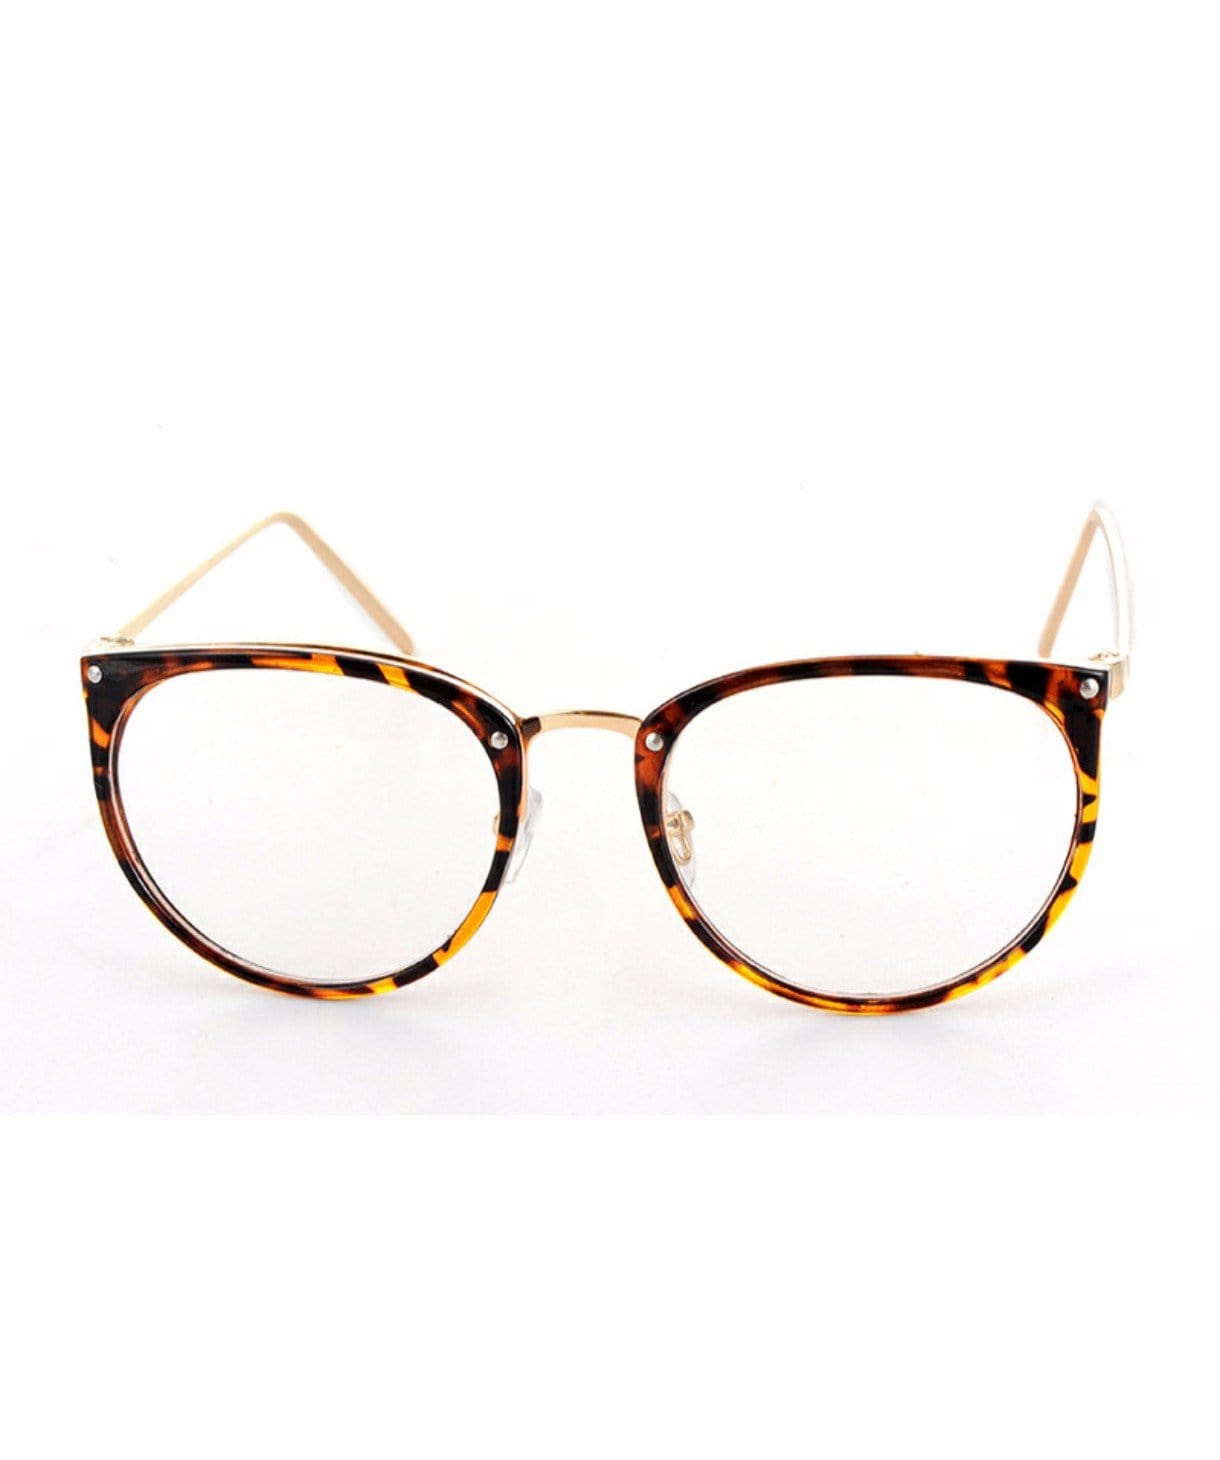 Tortoise Shell Glass Frames - Uptownie